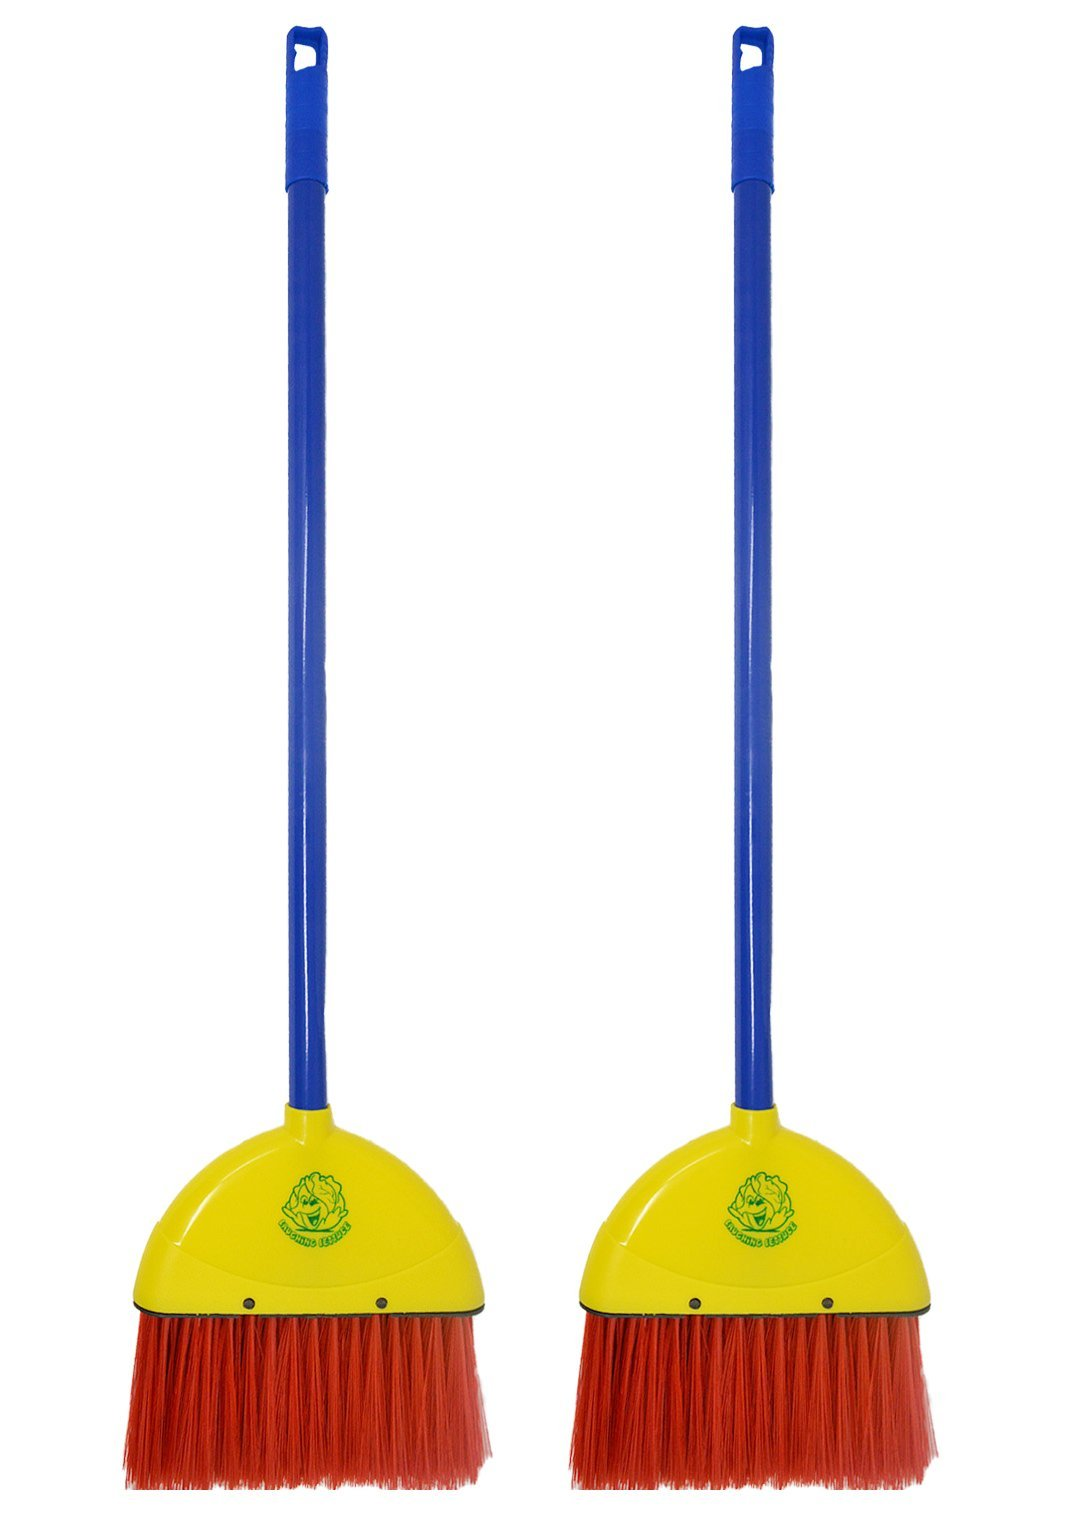 Children's Broom - 2 Pack - by Laughing Lettuce - Kid's Toy Broom Sweeps Like a Real Broom